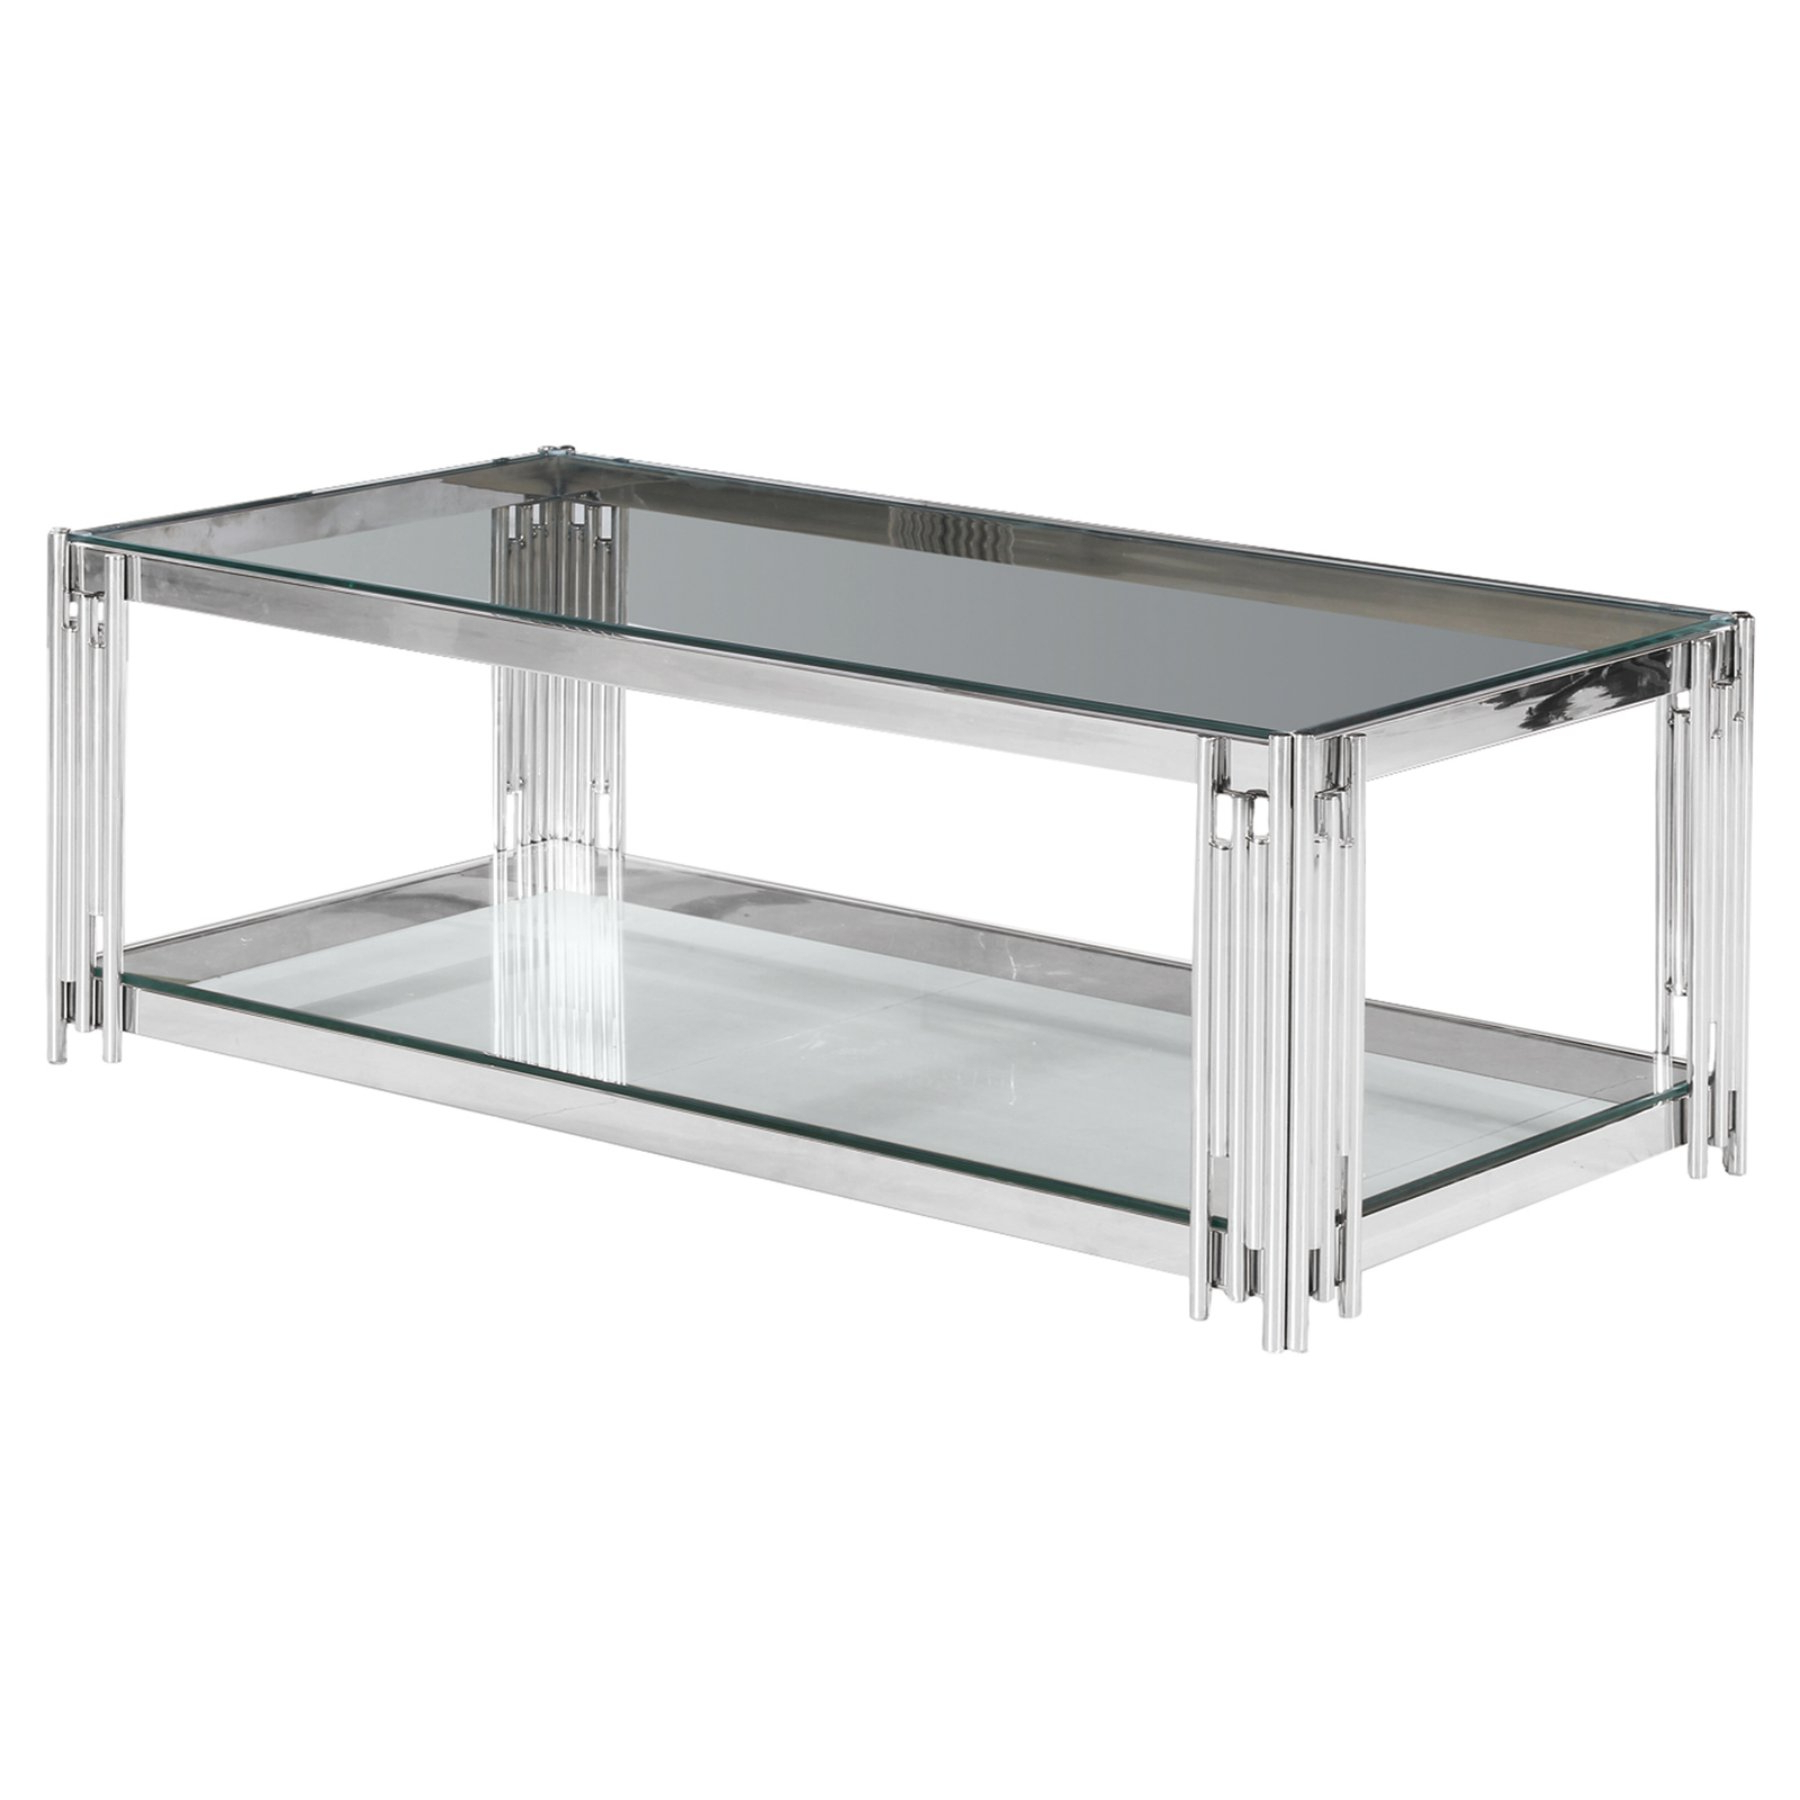 Widely Used Strick & Bolton Jules Chrome And Glass Coffee Tables Intended For Sagebrook Home 2 Tier Cocktail Table (View 10 of 20)